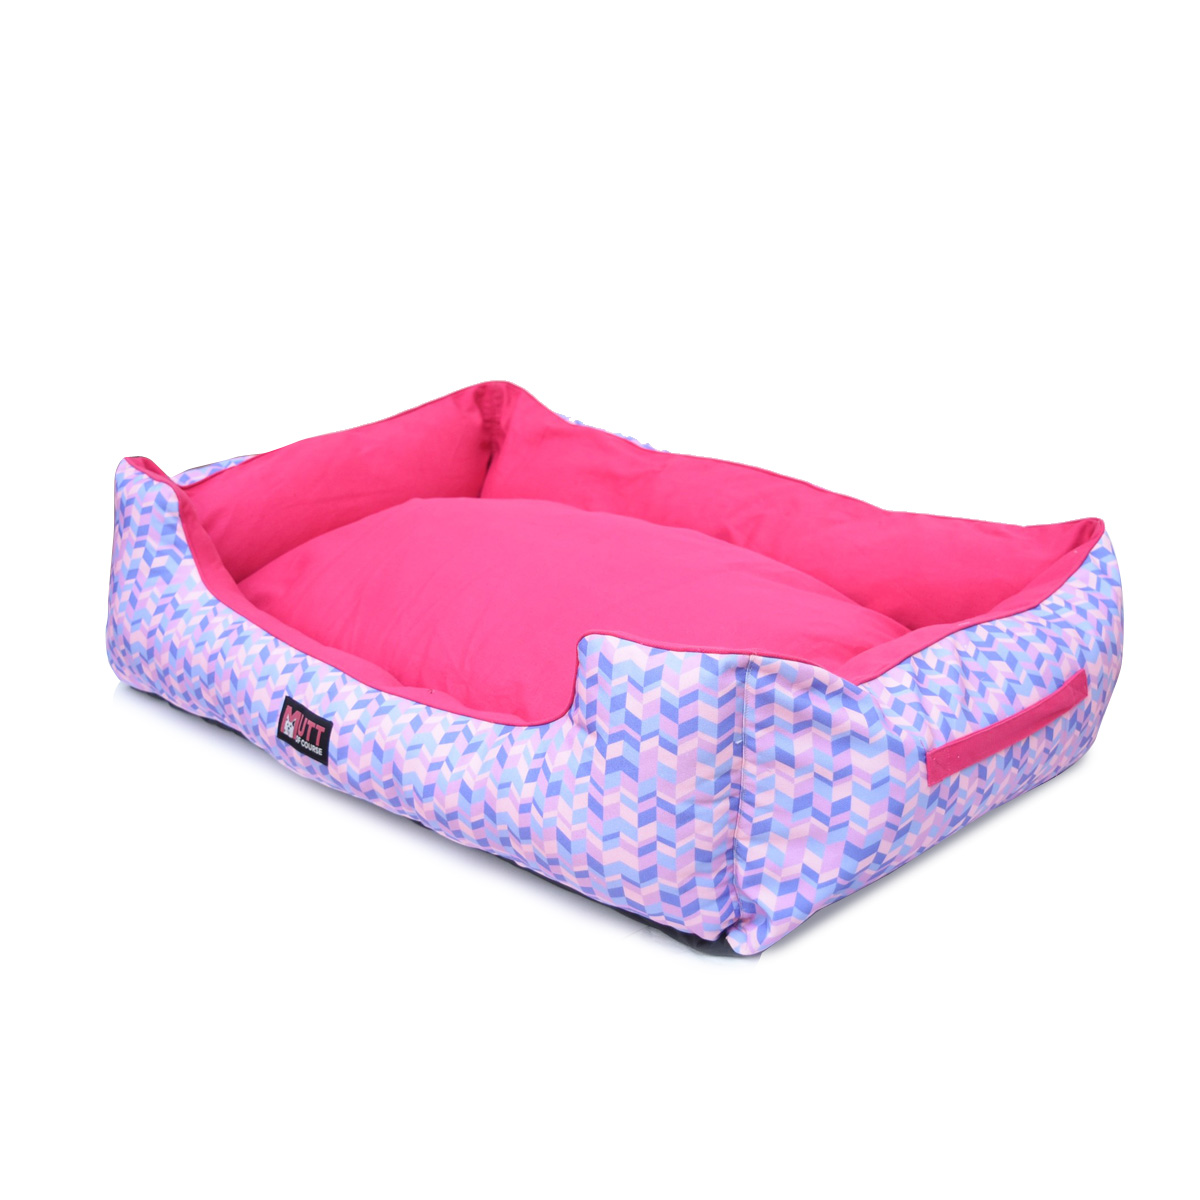 Mutt Of Course Geometrical Light Lounger Bed - Large